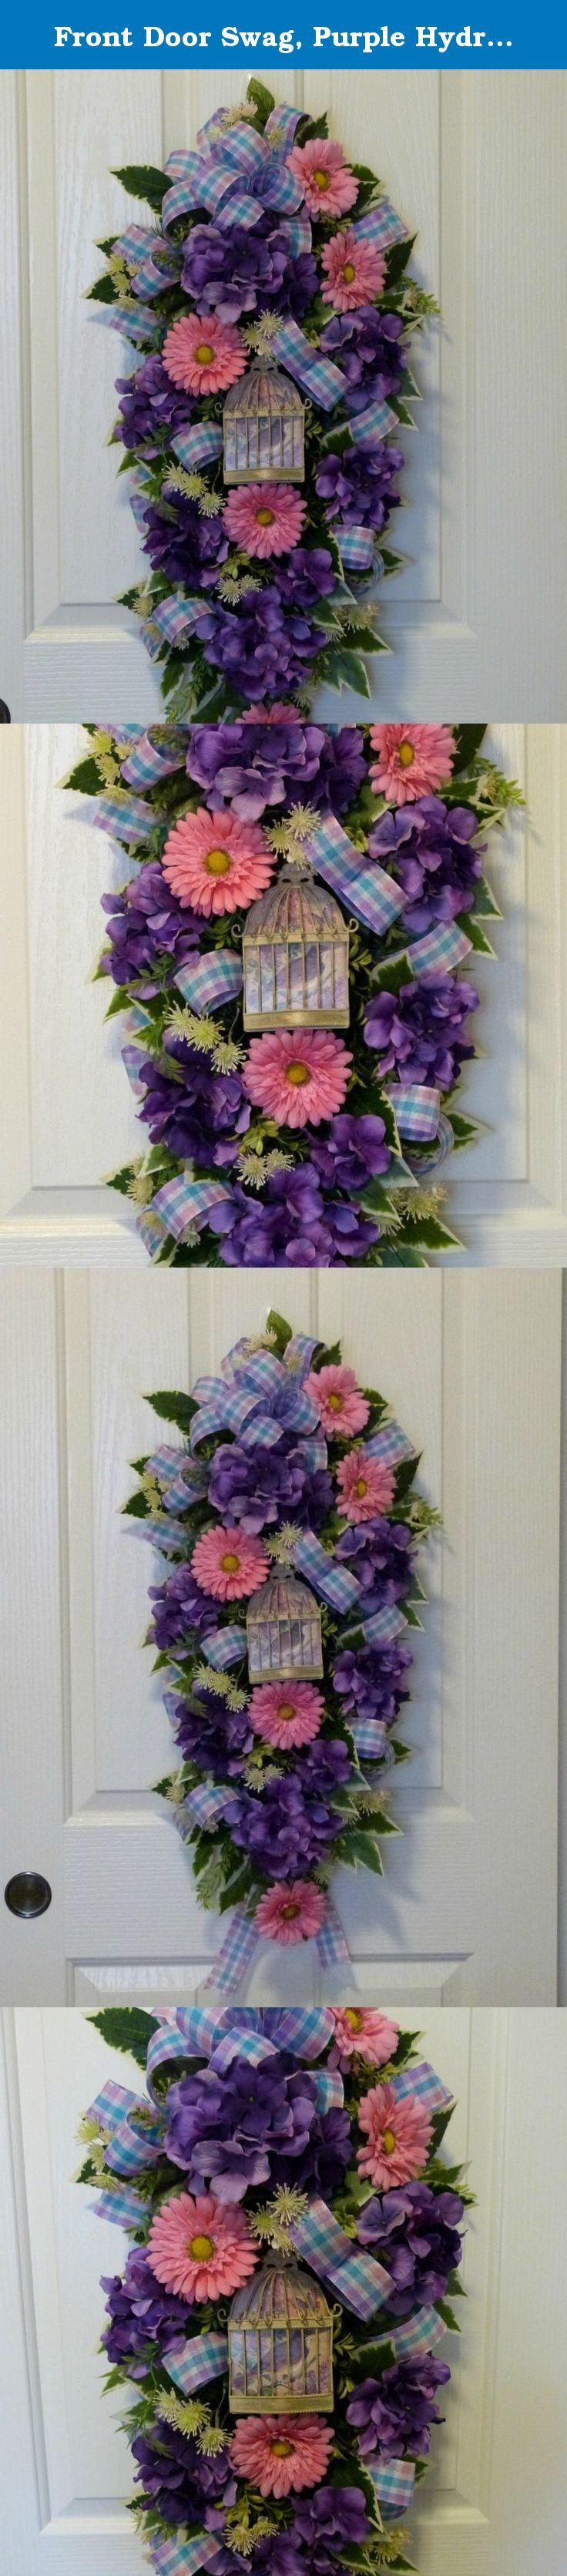 Front Door Swag, Purple Hydrangea Swag, Spring Door Swag With Hydrangeas. Welcome your guests with this gorgeous purple hydrangea door swag on your front door. This swag was made on a pine base with beautiful lush greenery including variegated ficus, boxwood, and asparagus fern. Flowers include Vibrant purple hydrangeas and pink gerbera daisies. A metal sign with pretty bird is in the center. Large pink, lavender, blue plaid bow is on the top with loops added throughout the swag. Silk...